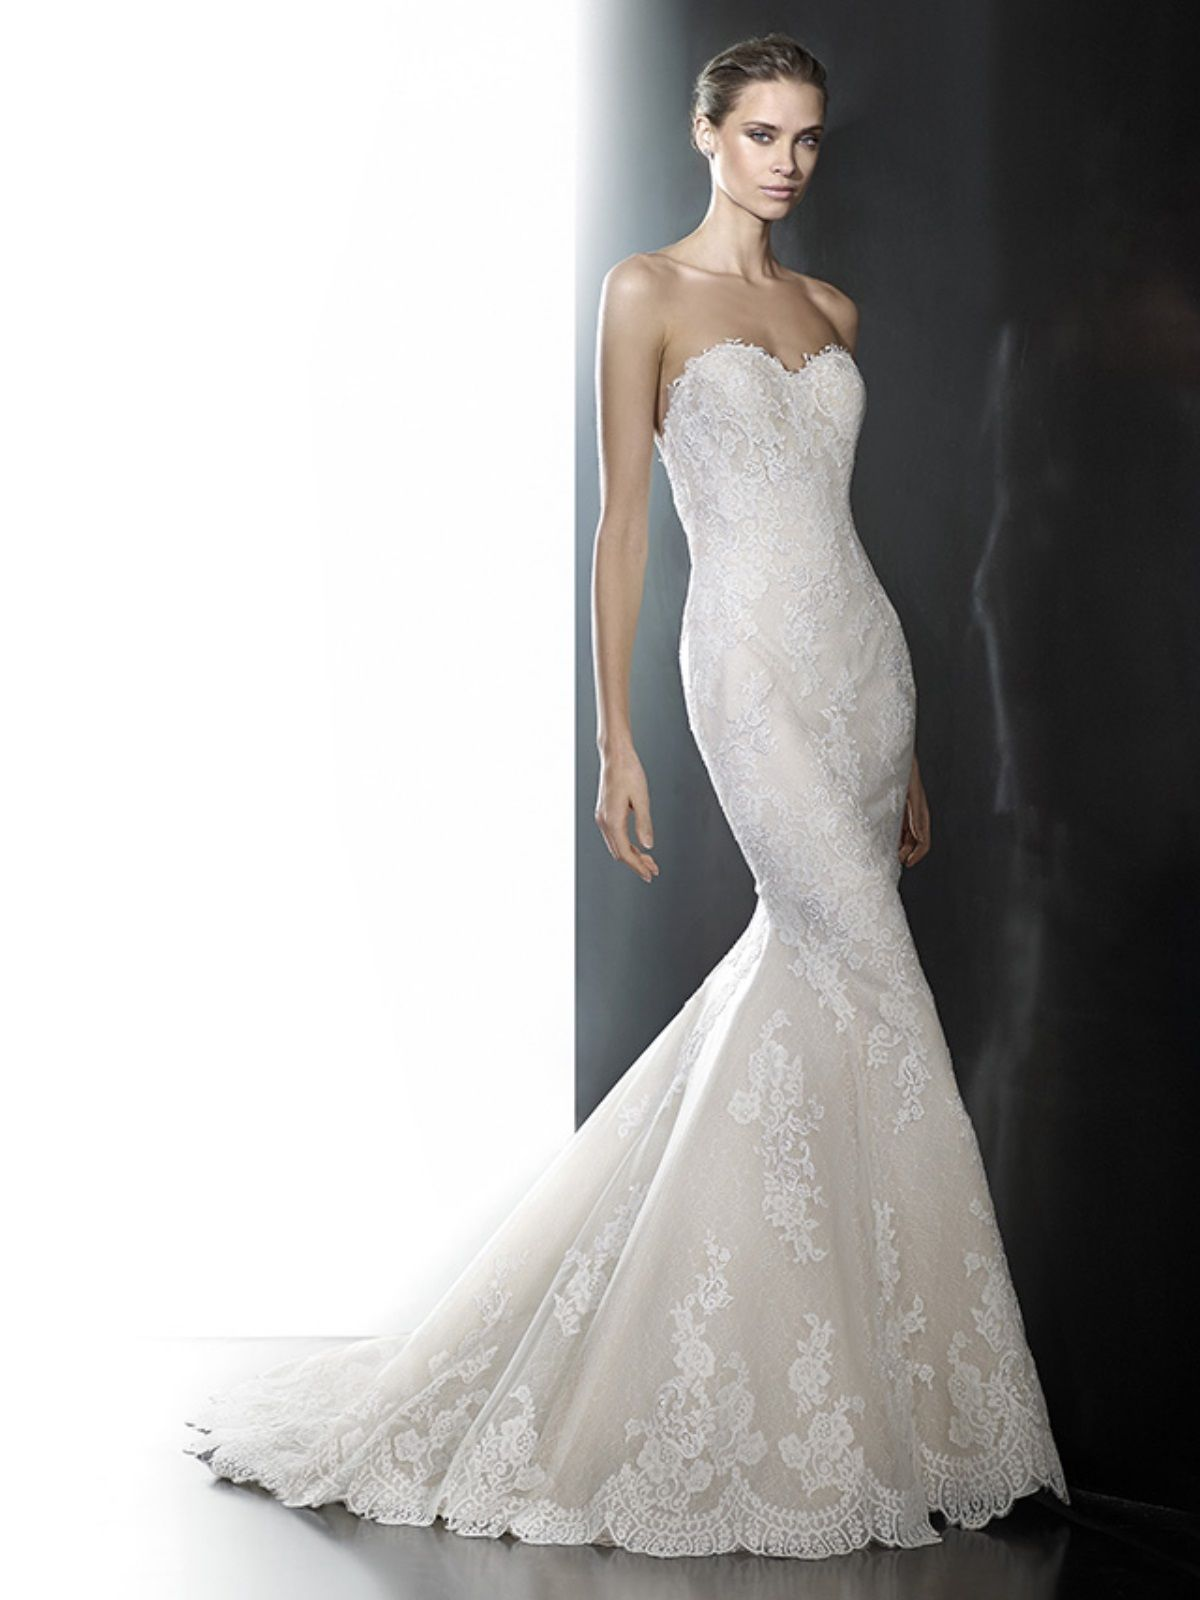 Find Local Classified Ads For Second Hand Wedding Clothes And Bridal Wear In The UK Ireland Buy Sell Hassle Free With Preloved